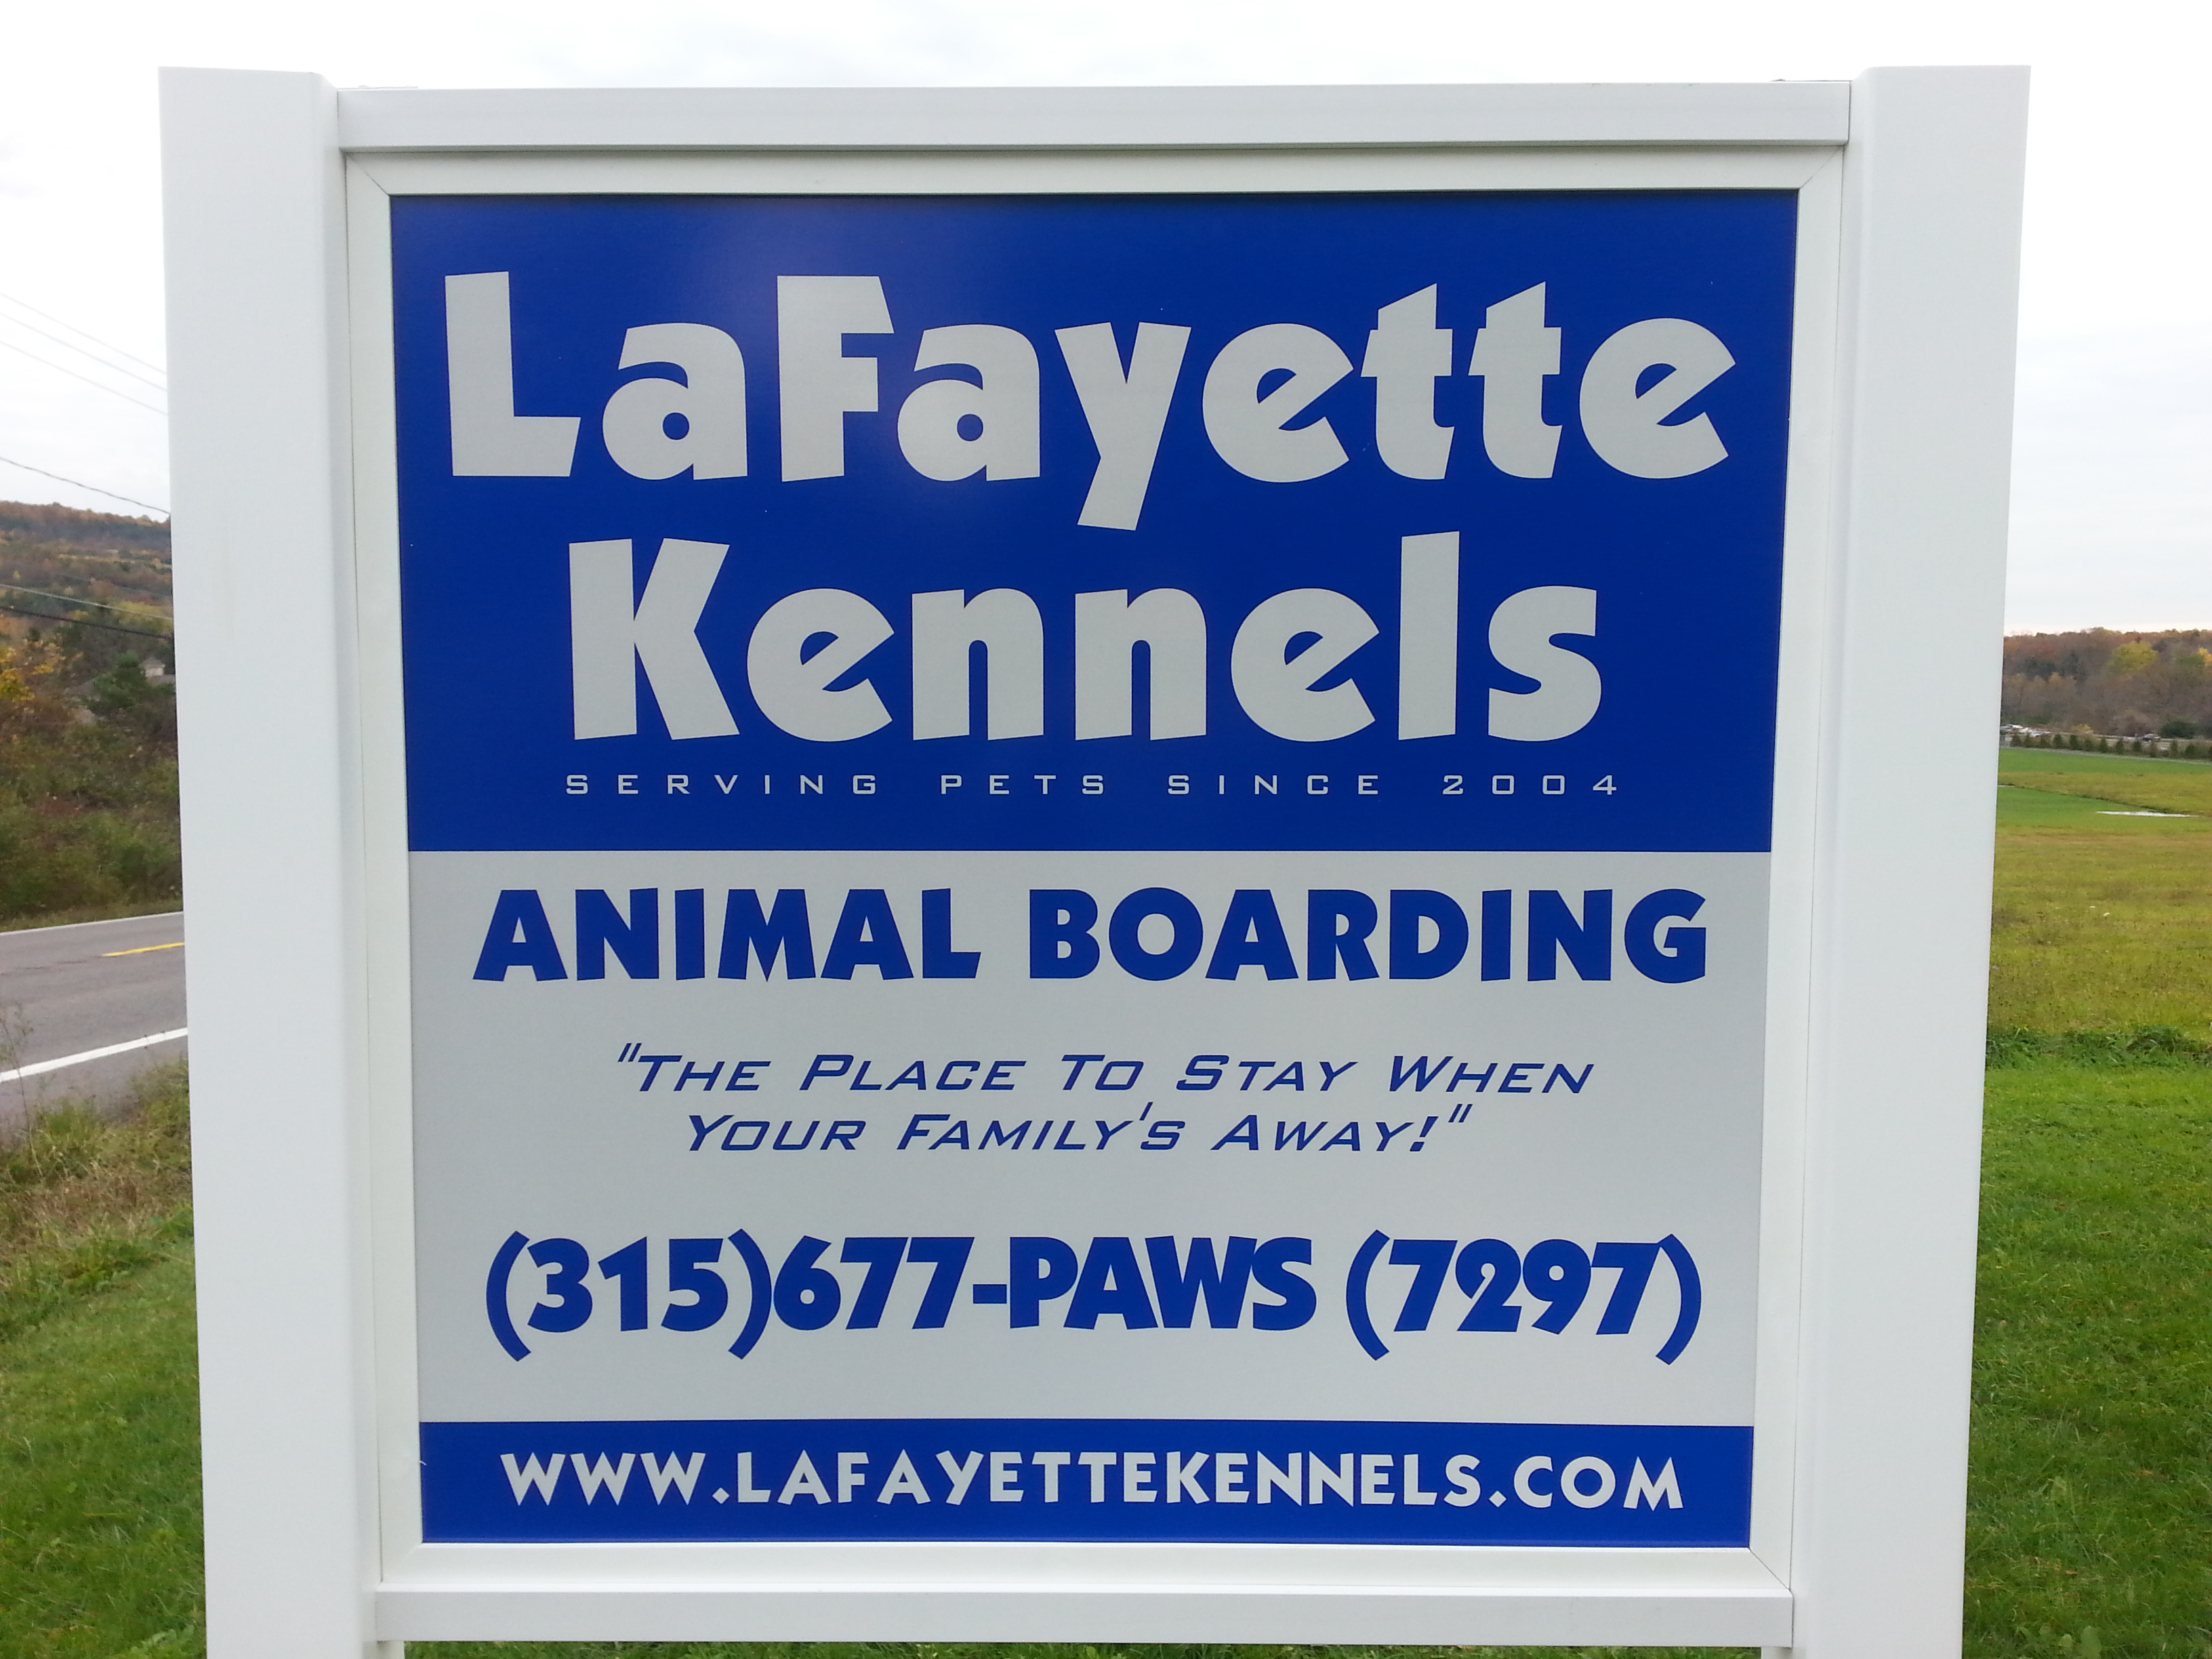 LaFayette Kennels - Your Pet's Home Away From Home in